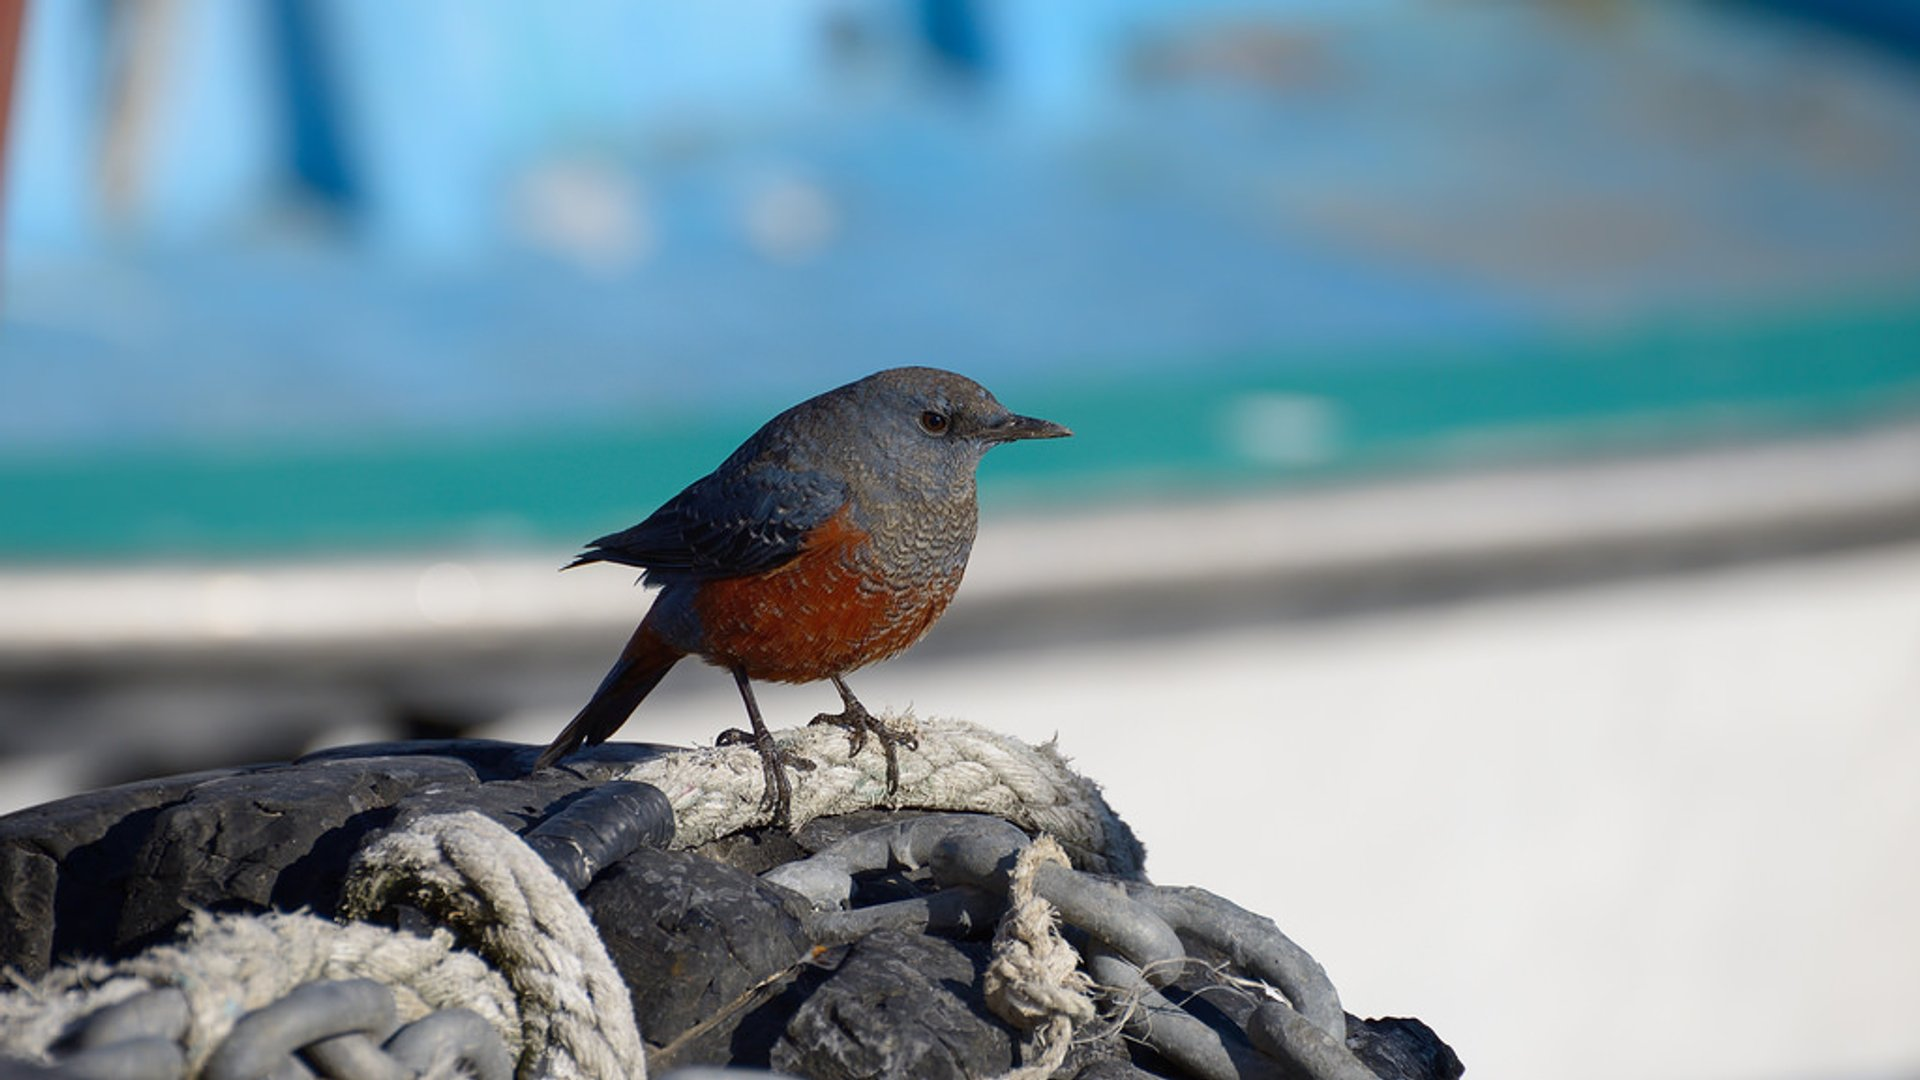 Blue Rock Thrush 2020